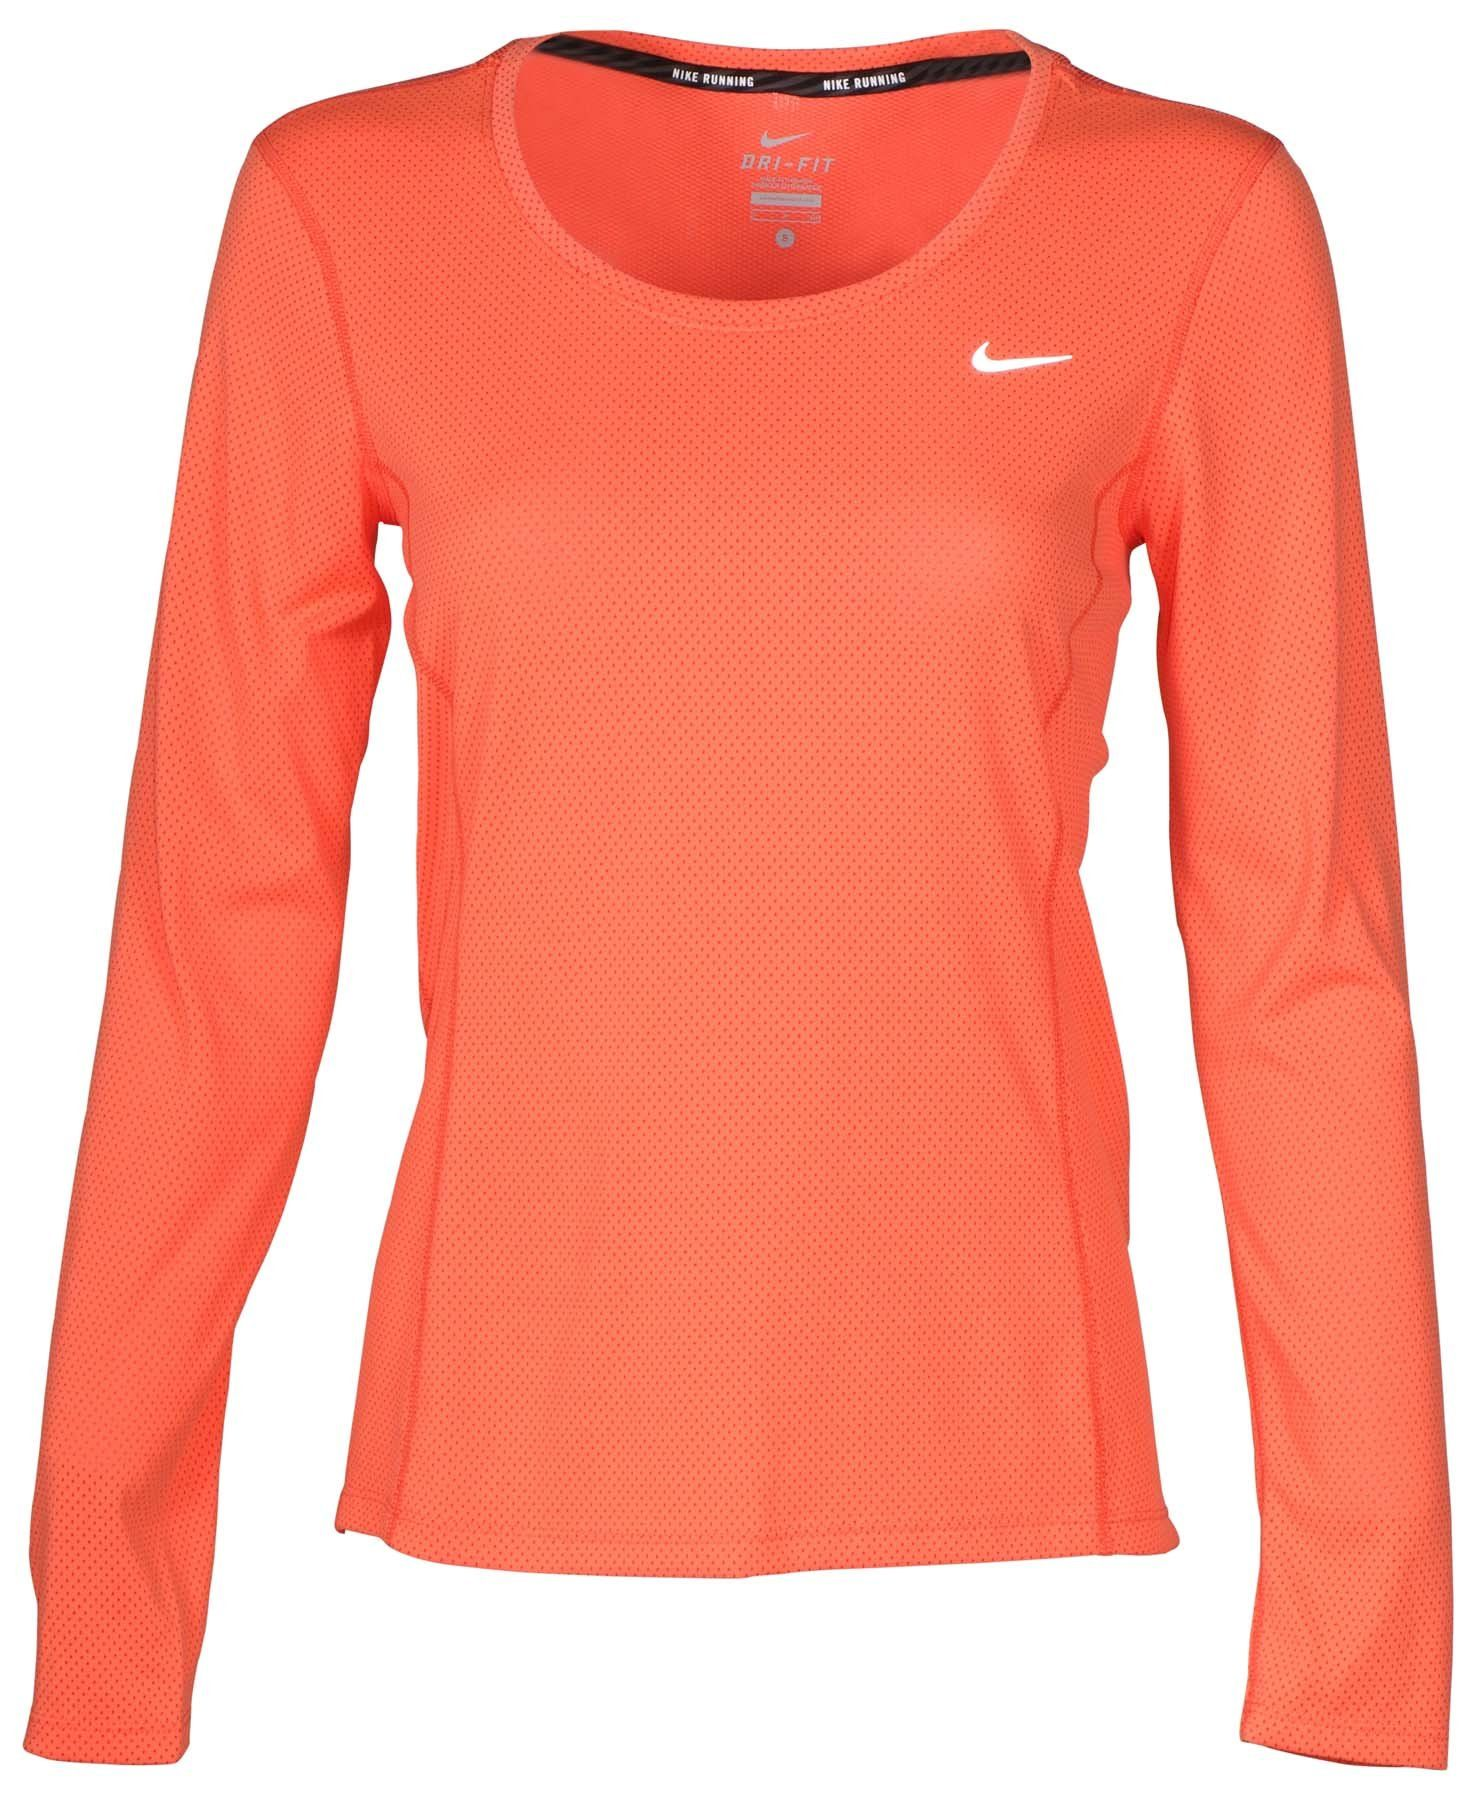 087a16a41f43 Nike Women s Dri-Fit Contour Long Sleeve Running Shirt-Coral-Small.  Authentic